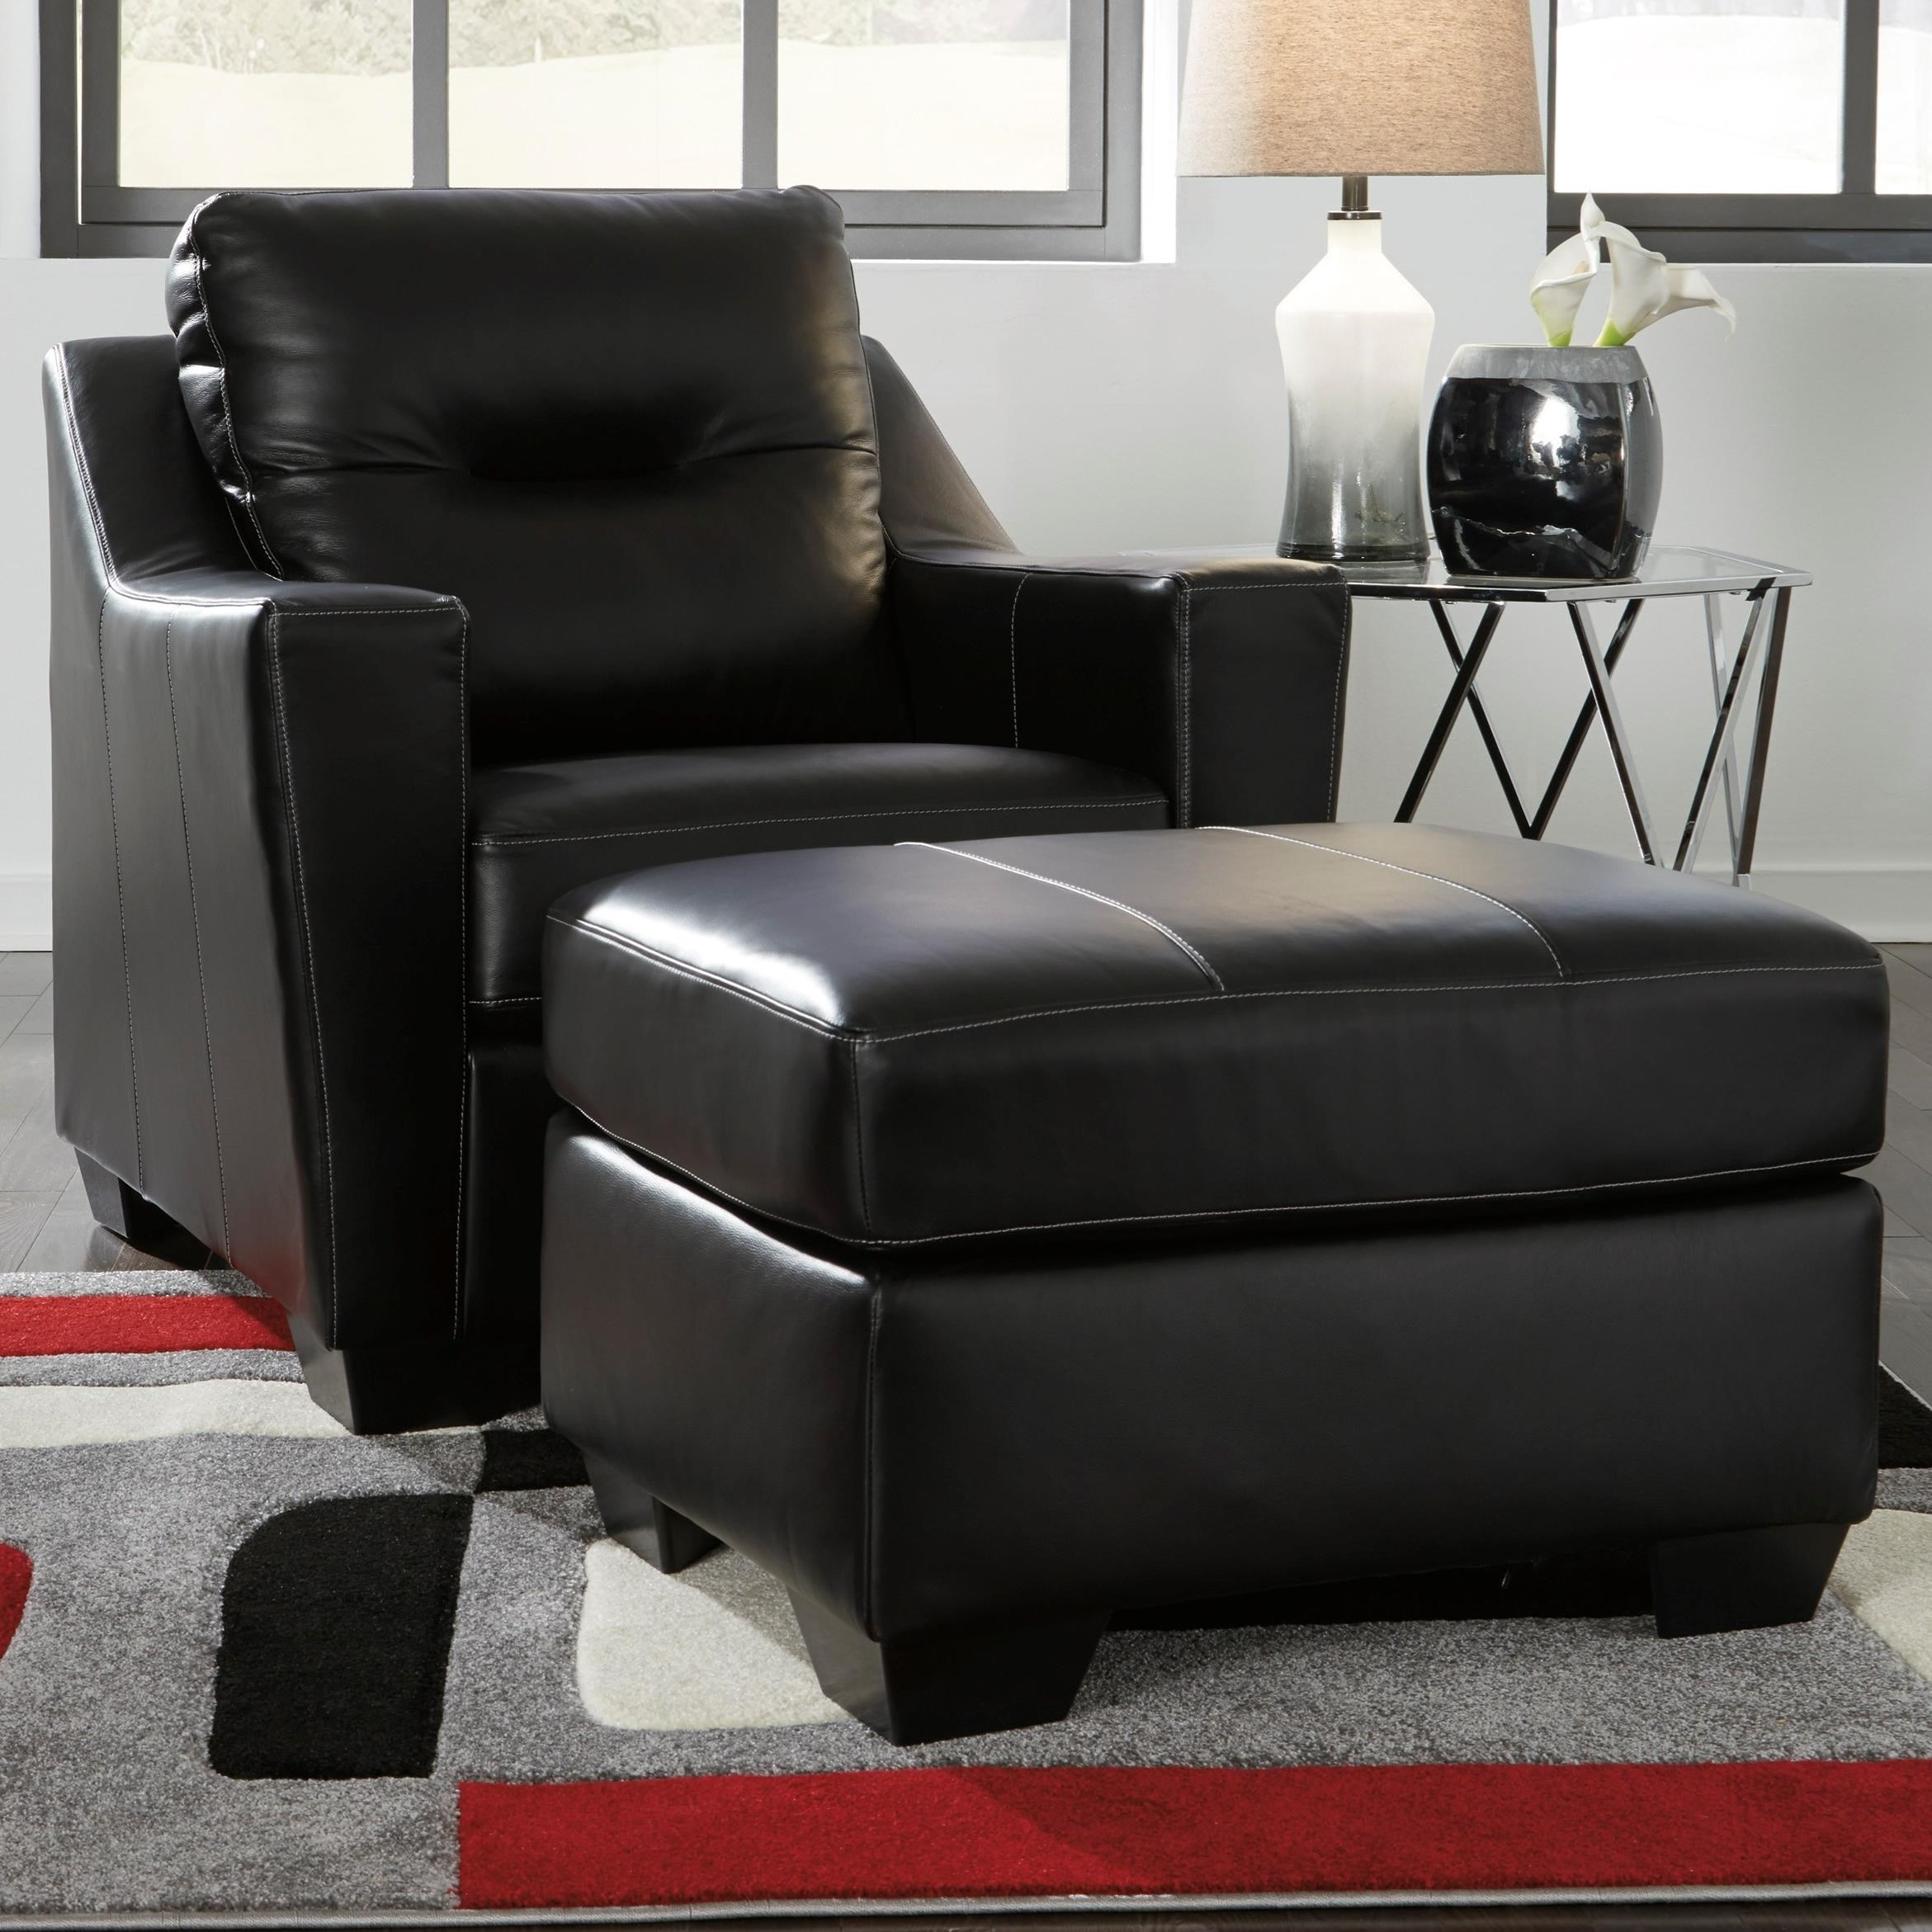 Signature Design By Ashley Kensbridge Leather Match Contemporary Chair U0026  Ottoman